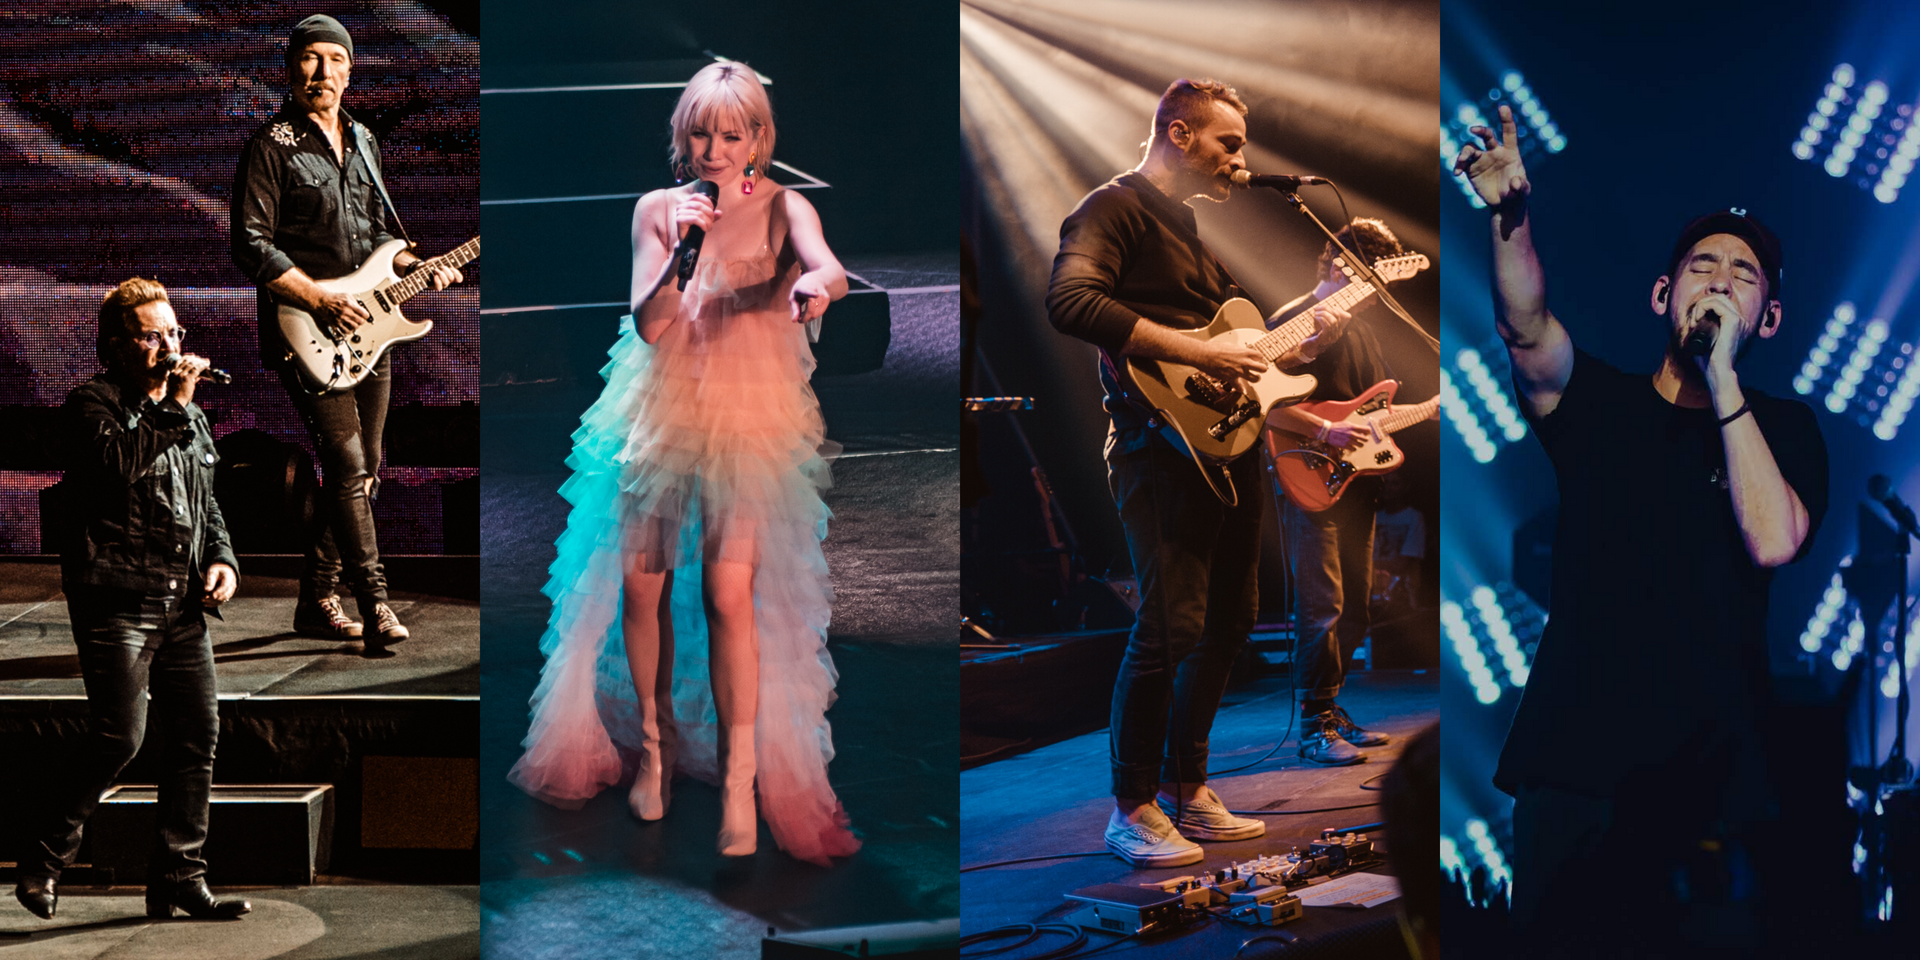 Best gigs of 2019 – U2, Carly Rae Jepsen, American Football, Mike Shinoda, and more